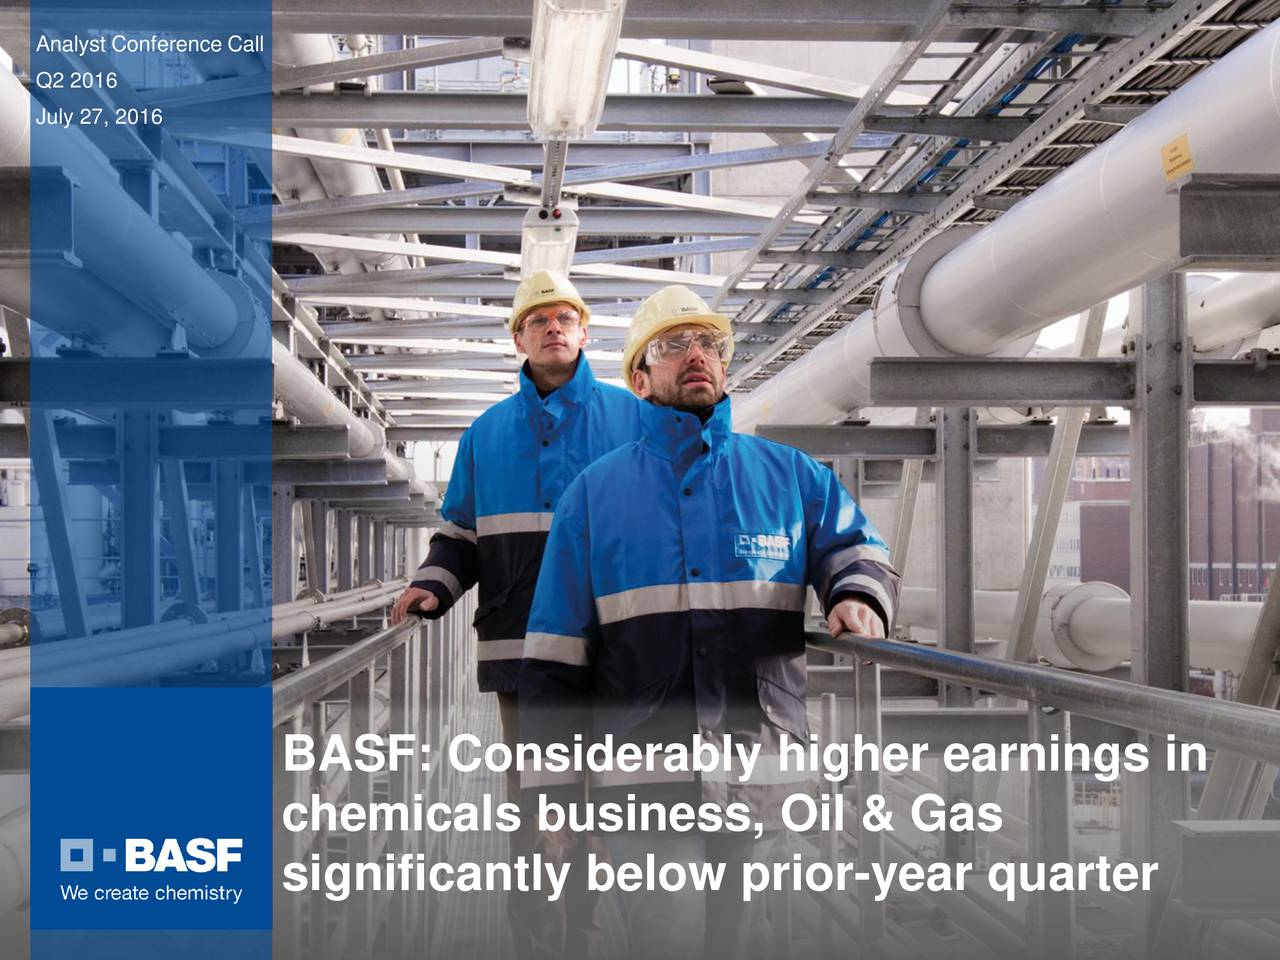 Q2 2016 July 27, 2016 150 years BASF: Considerably higher earnings in chemicals business, Oil & Gas significantly below prior-year quarter